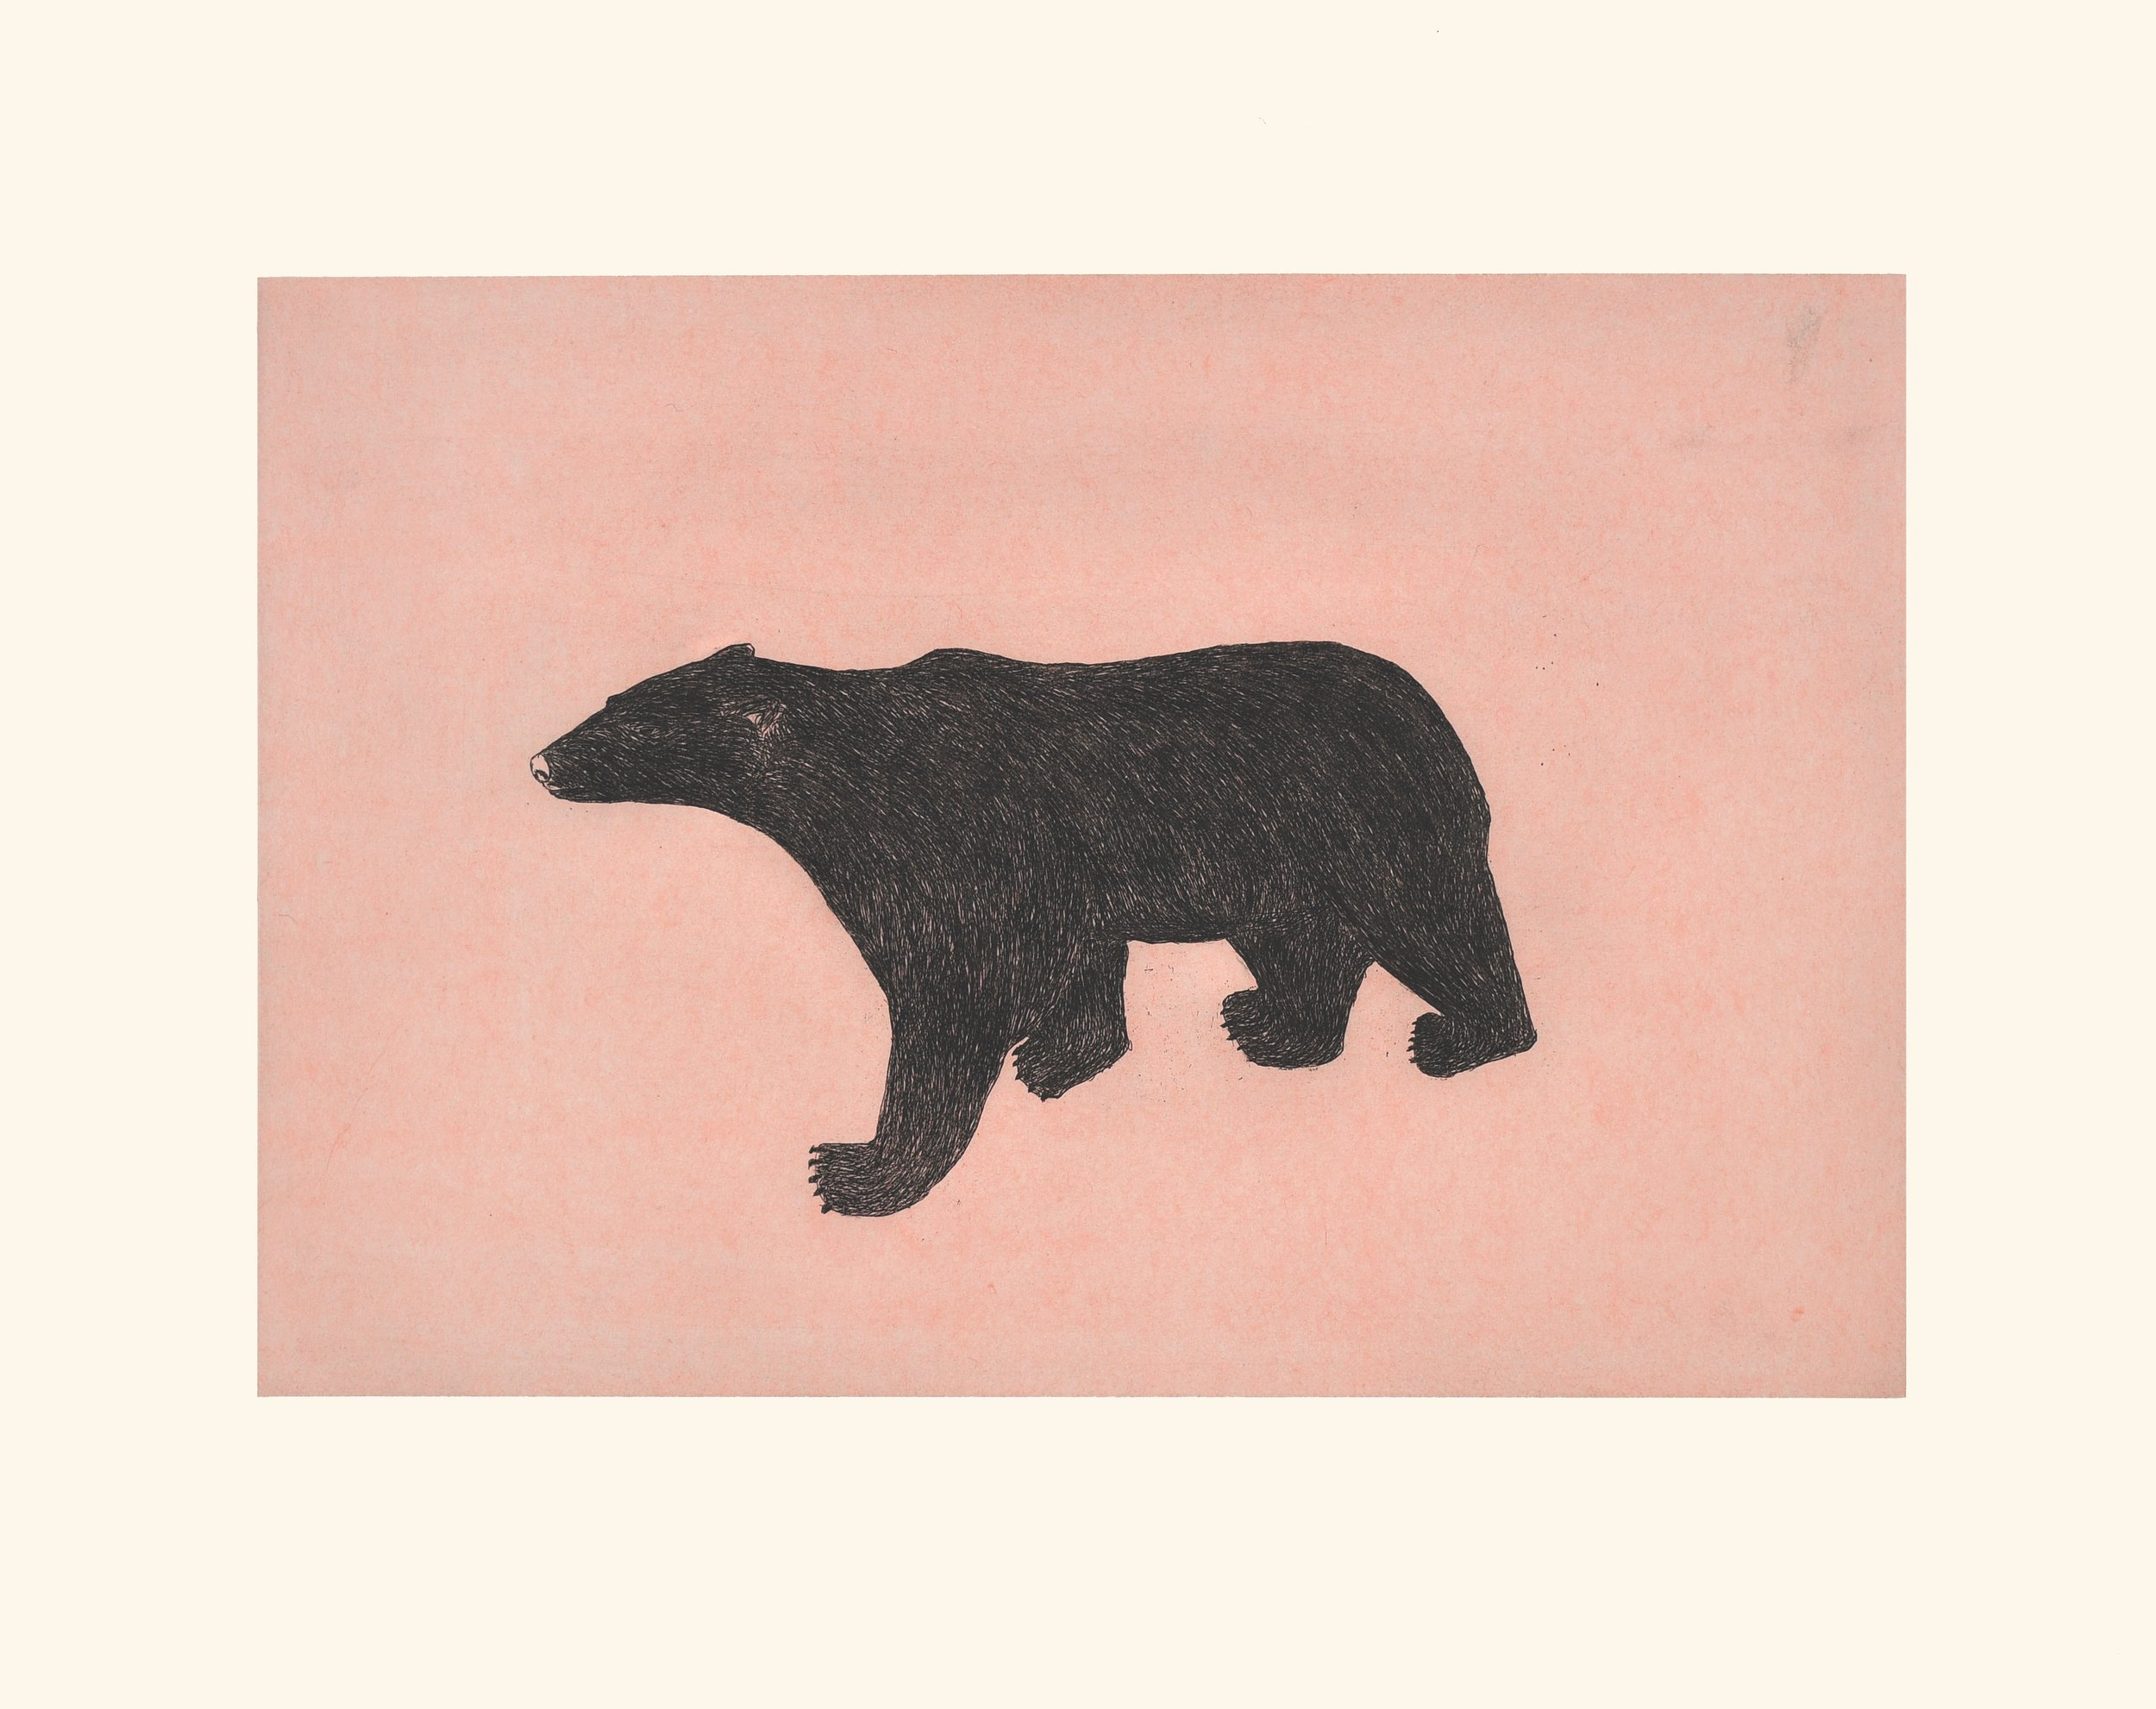 OHITO ASHOONA  11. Prowling Bear  Etching & Chine Collé  Paper: Arches White  Printer: Studio PM  64 x 80 cm  $ 800